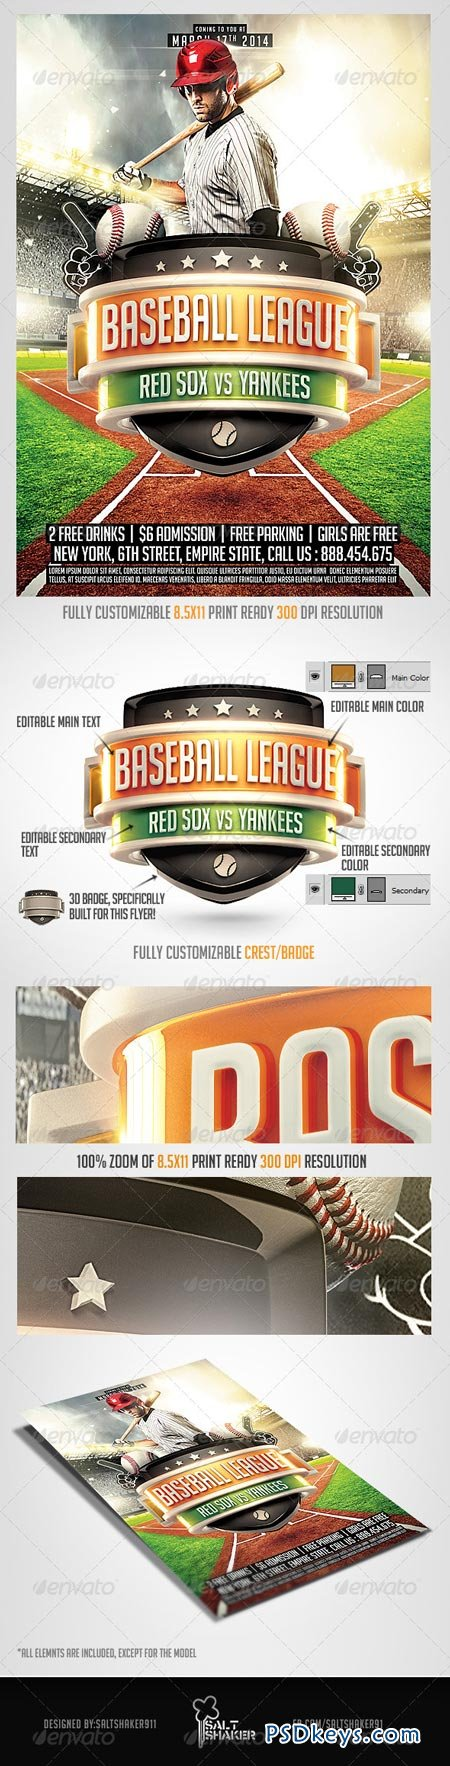 Baseball League Flyer Template 7104401 Free Download Photoshop – Baseball Flyer